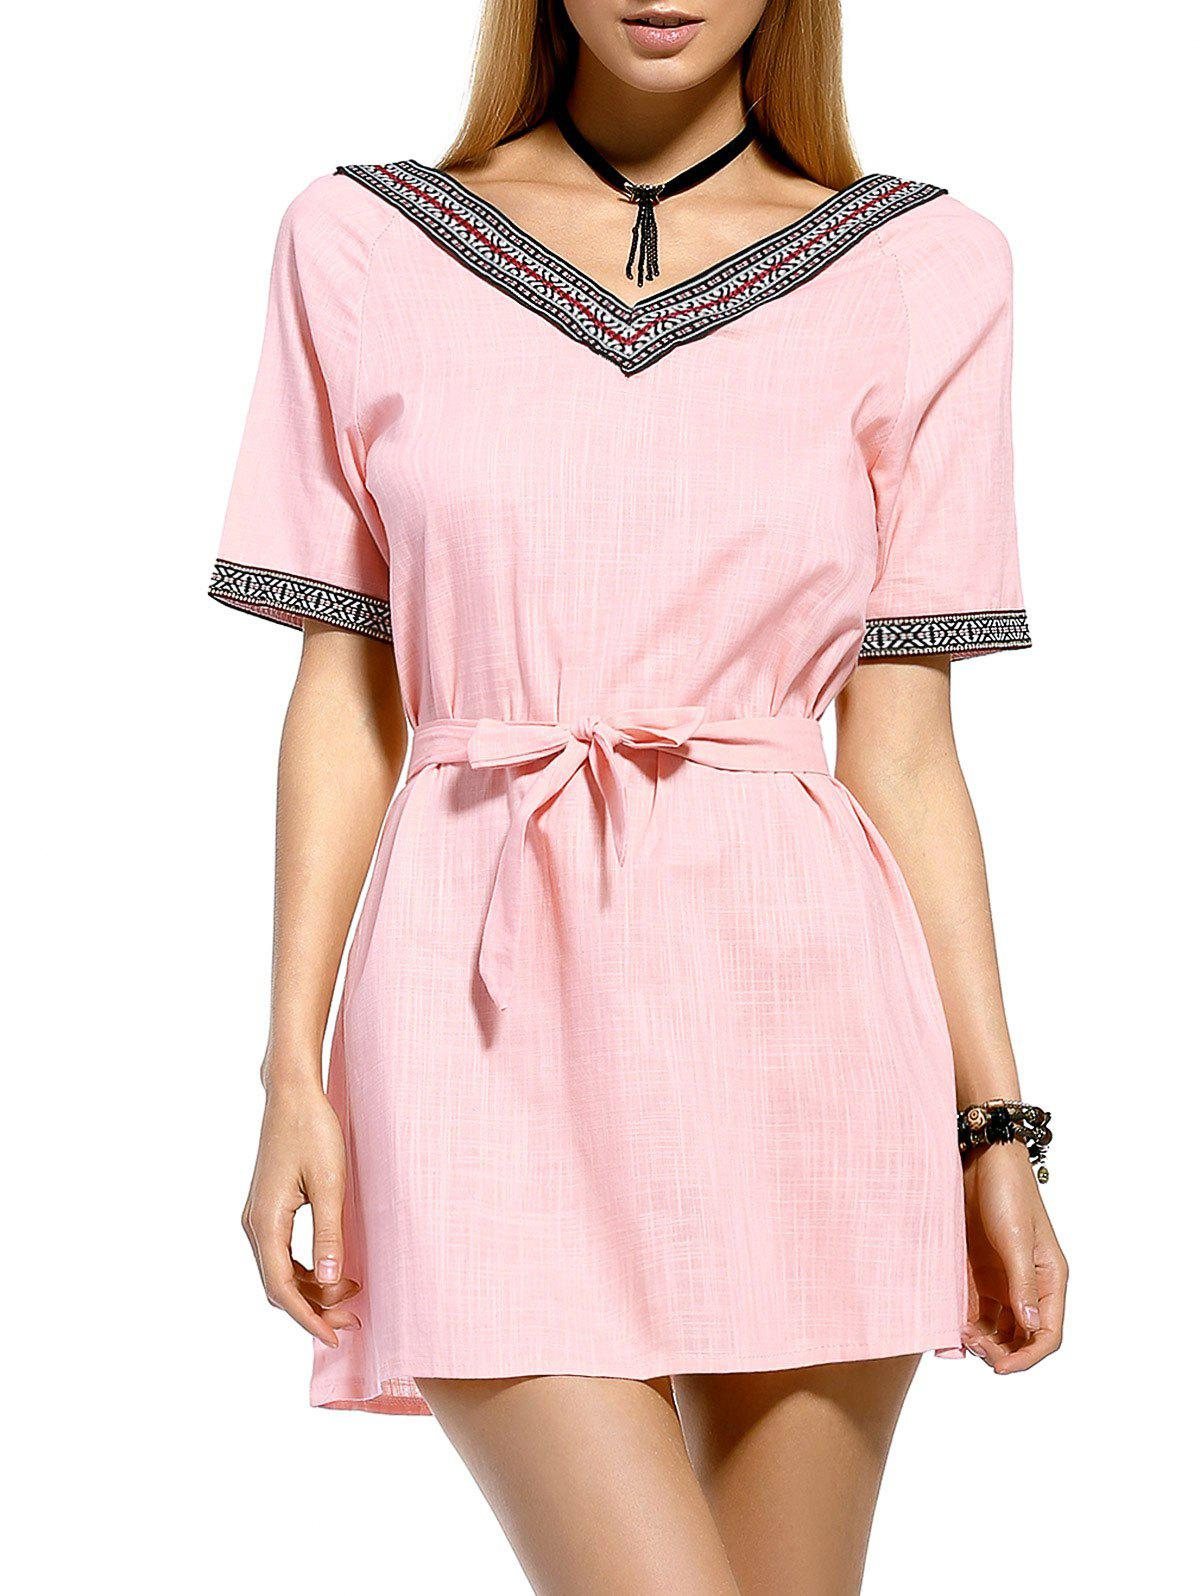 Brief Bowknot Tie Belted Spliced Women's Dress - PINK M